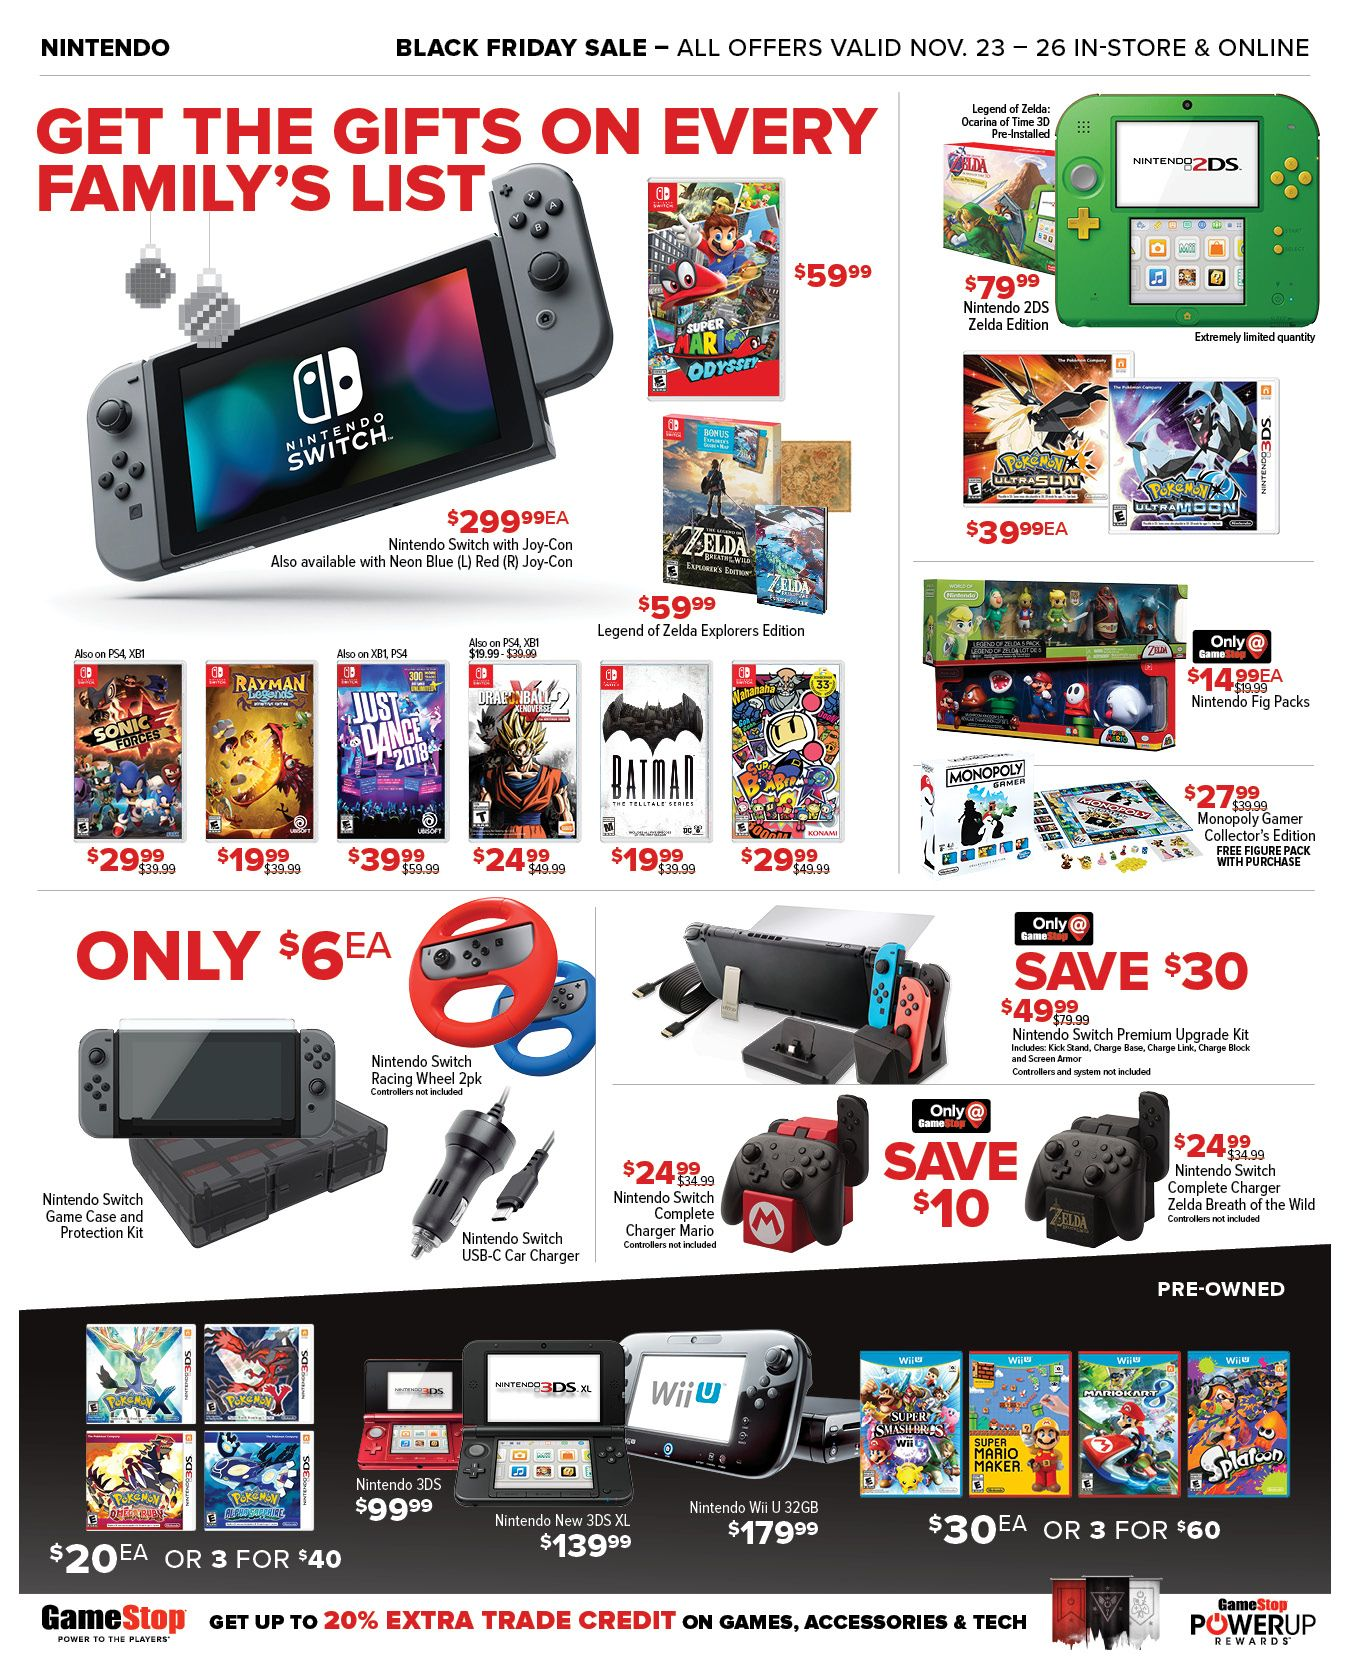 2017 Black Friday Deals - Sales on Video Games, Consoles & More ...